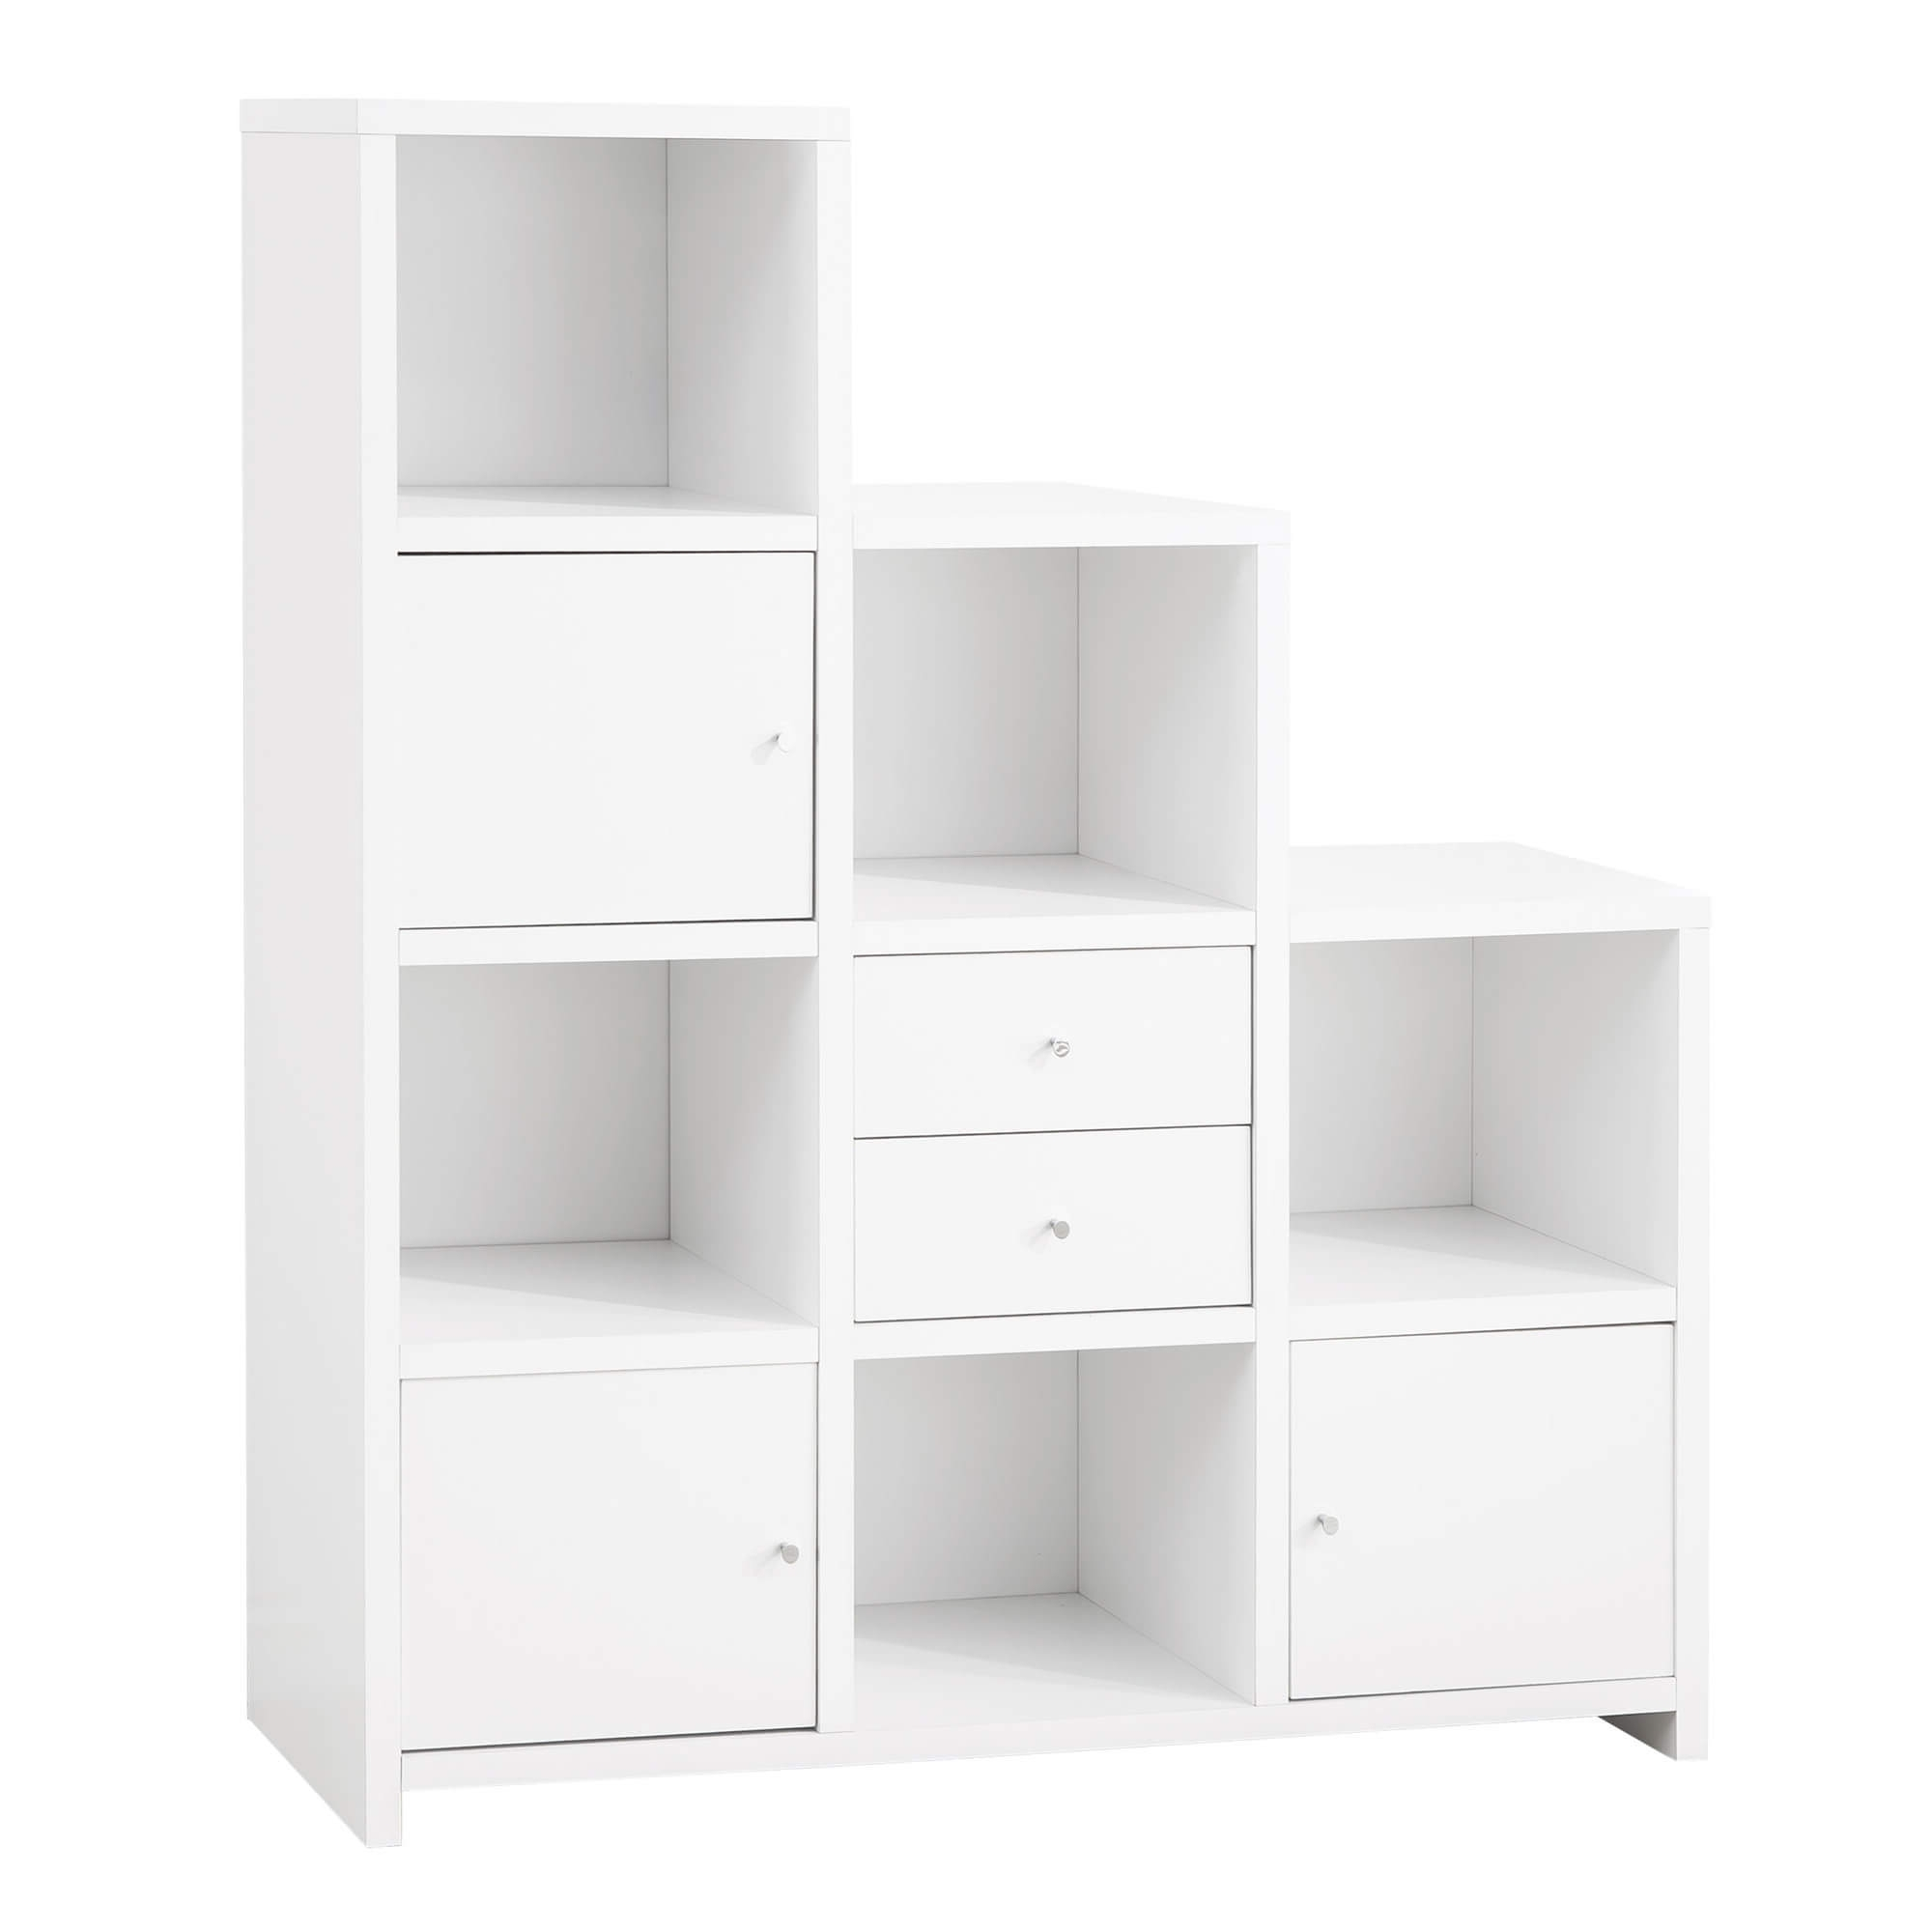 Cube Bookcase White, Target Cube Bookshelf Cube Storage Shelves For Well Known Target White Bookcases (View 10 of 15)